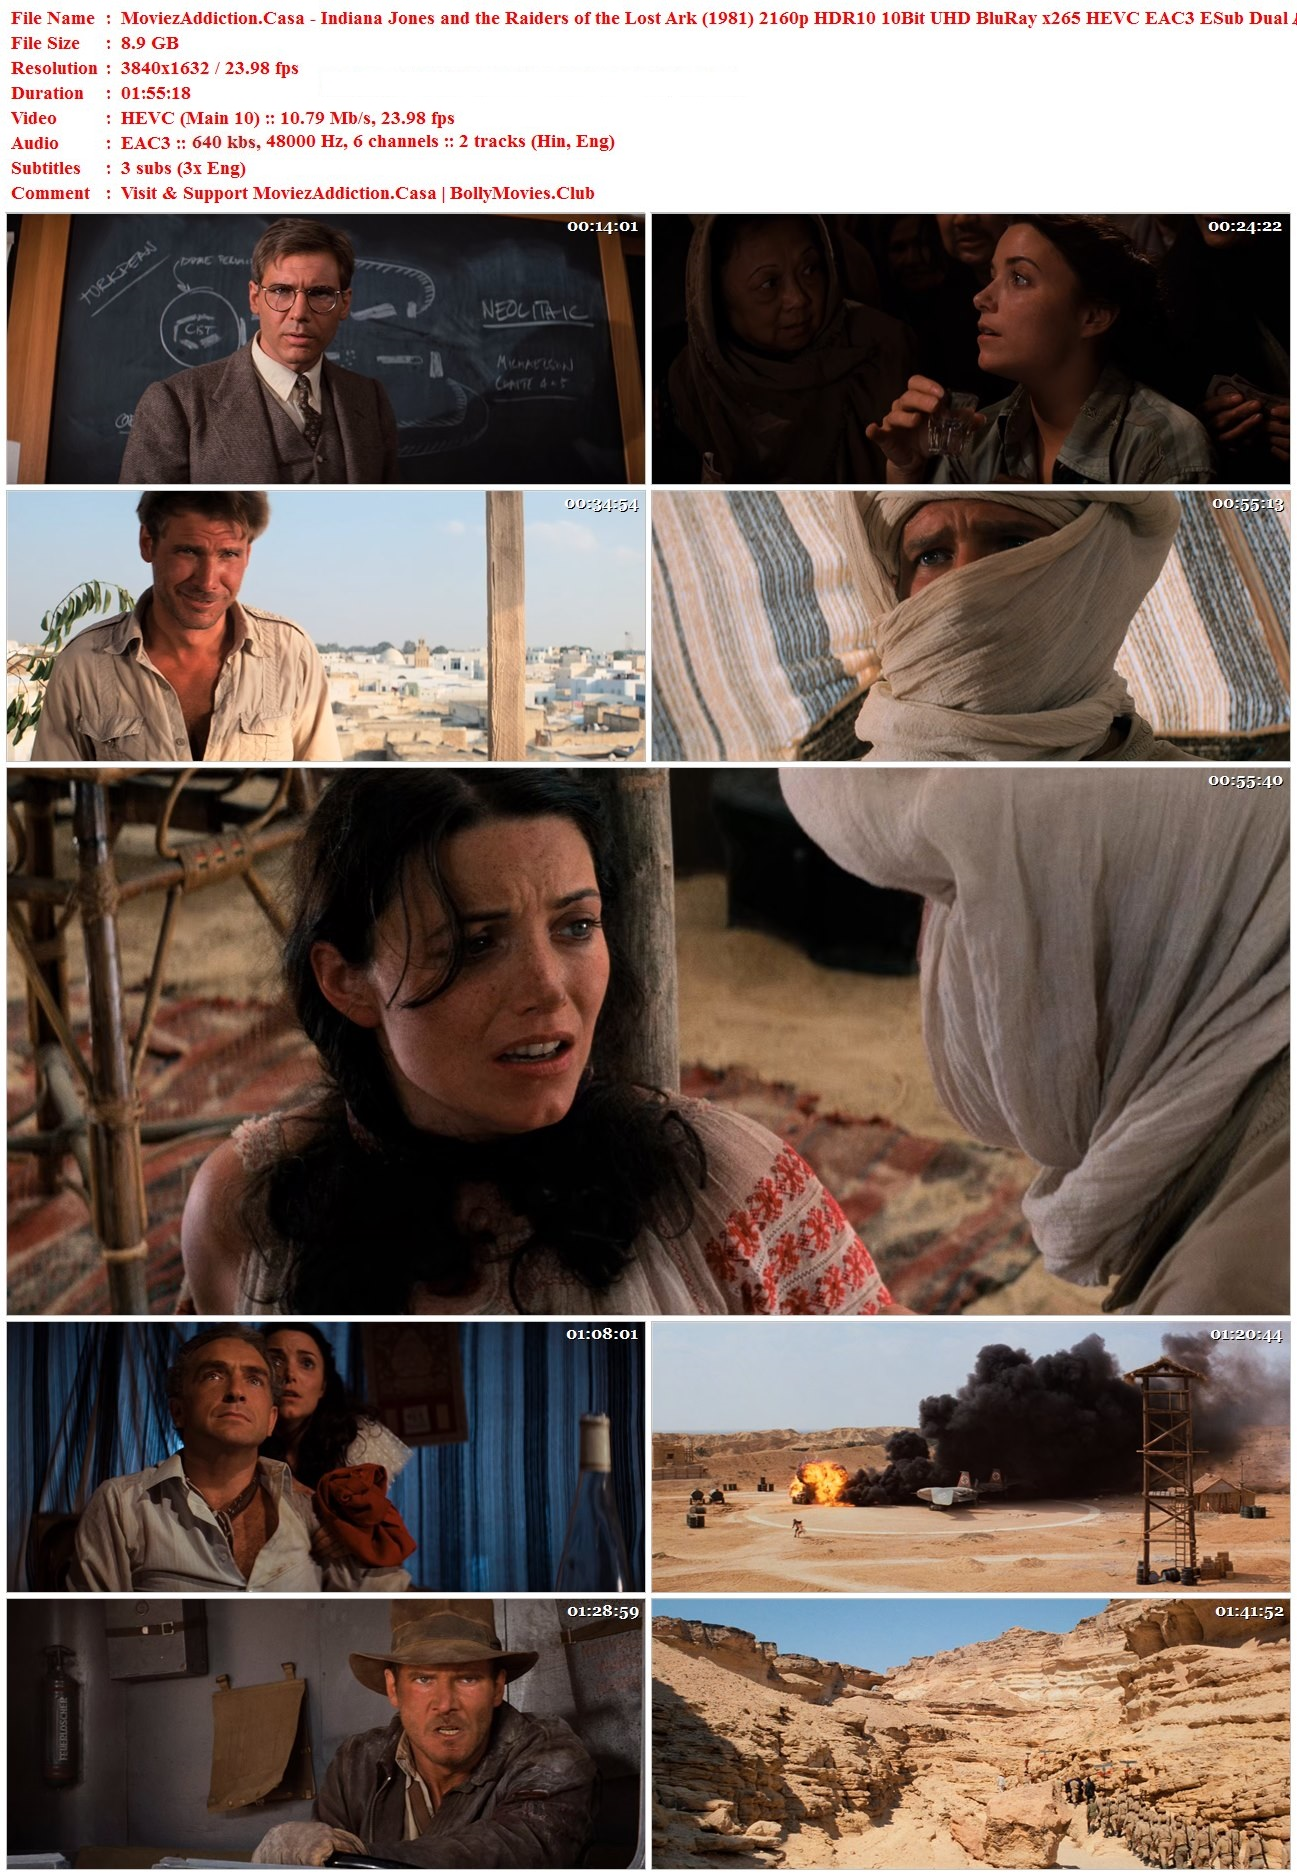 Download Indiana Jones and the Raiders of the Lost Ark